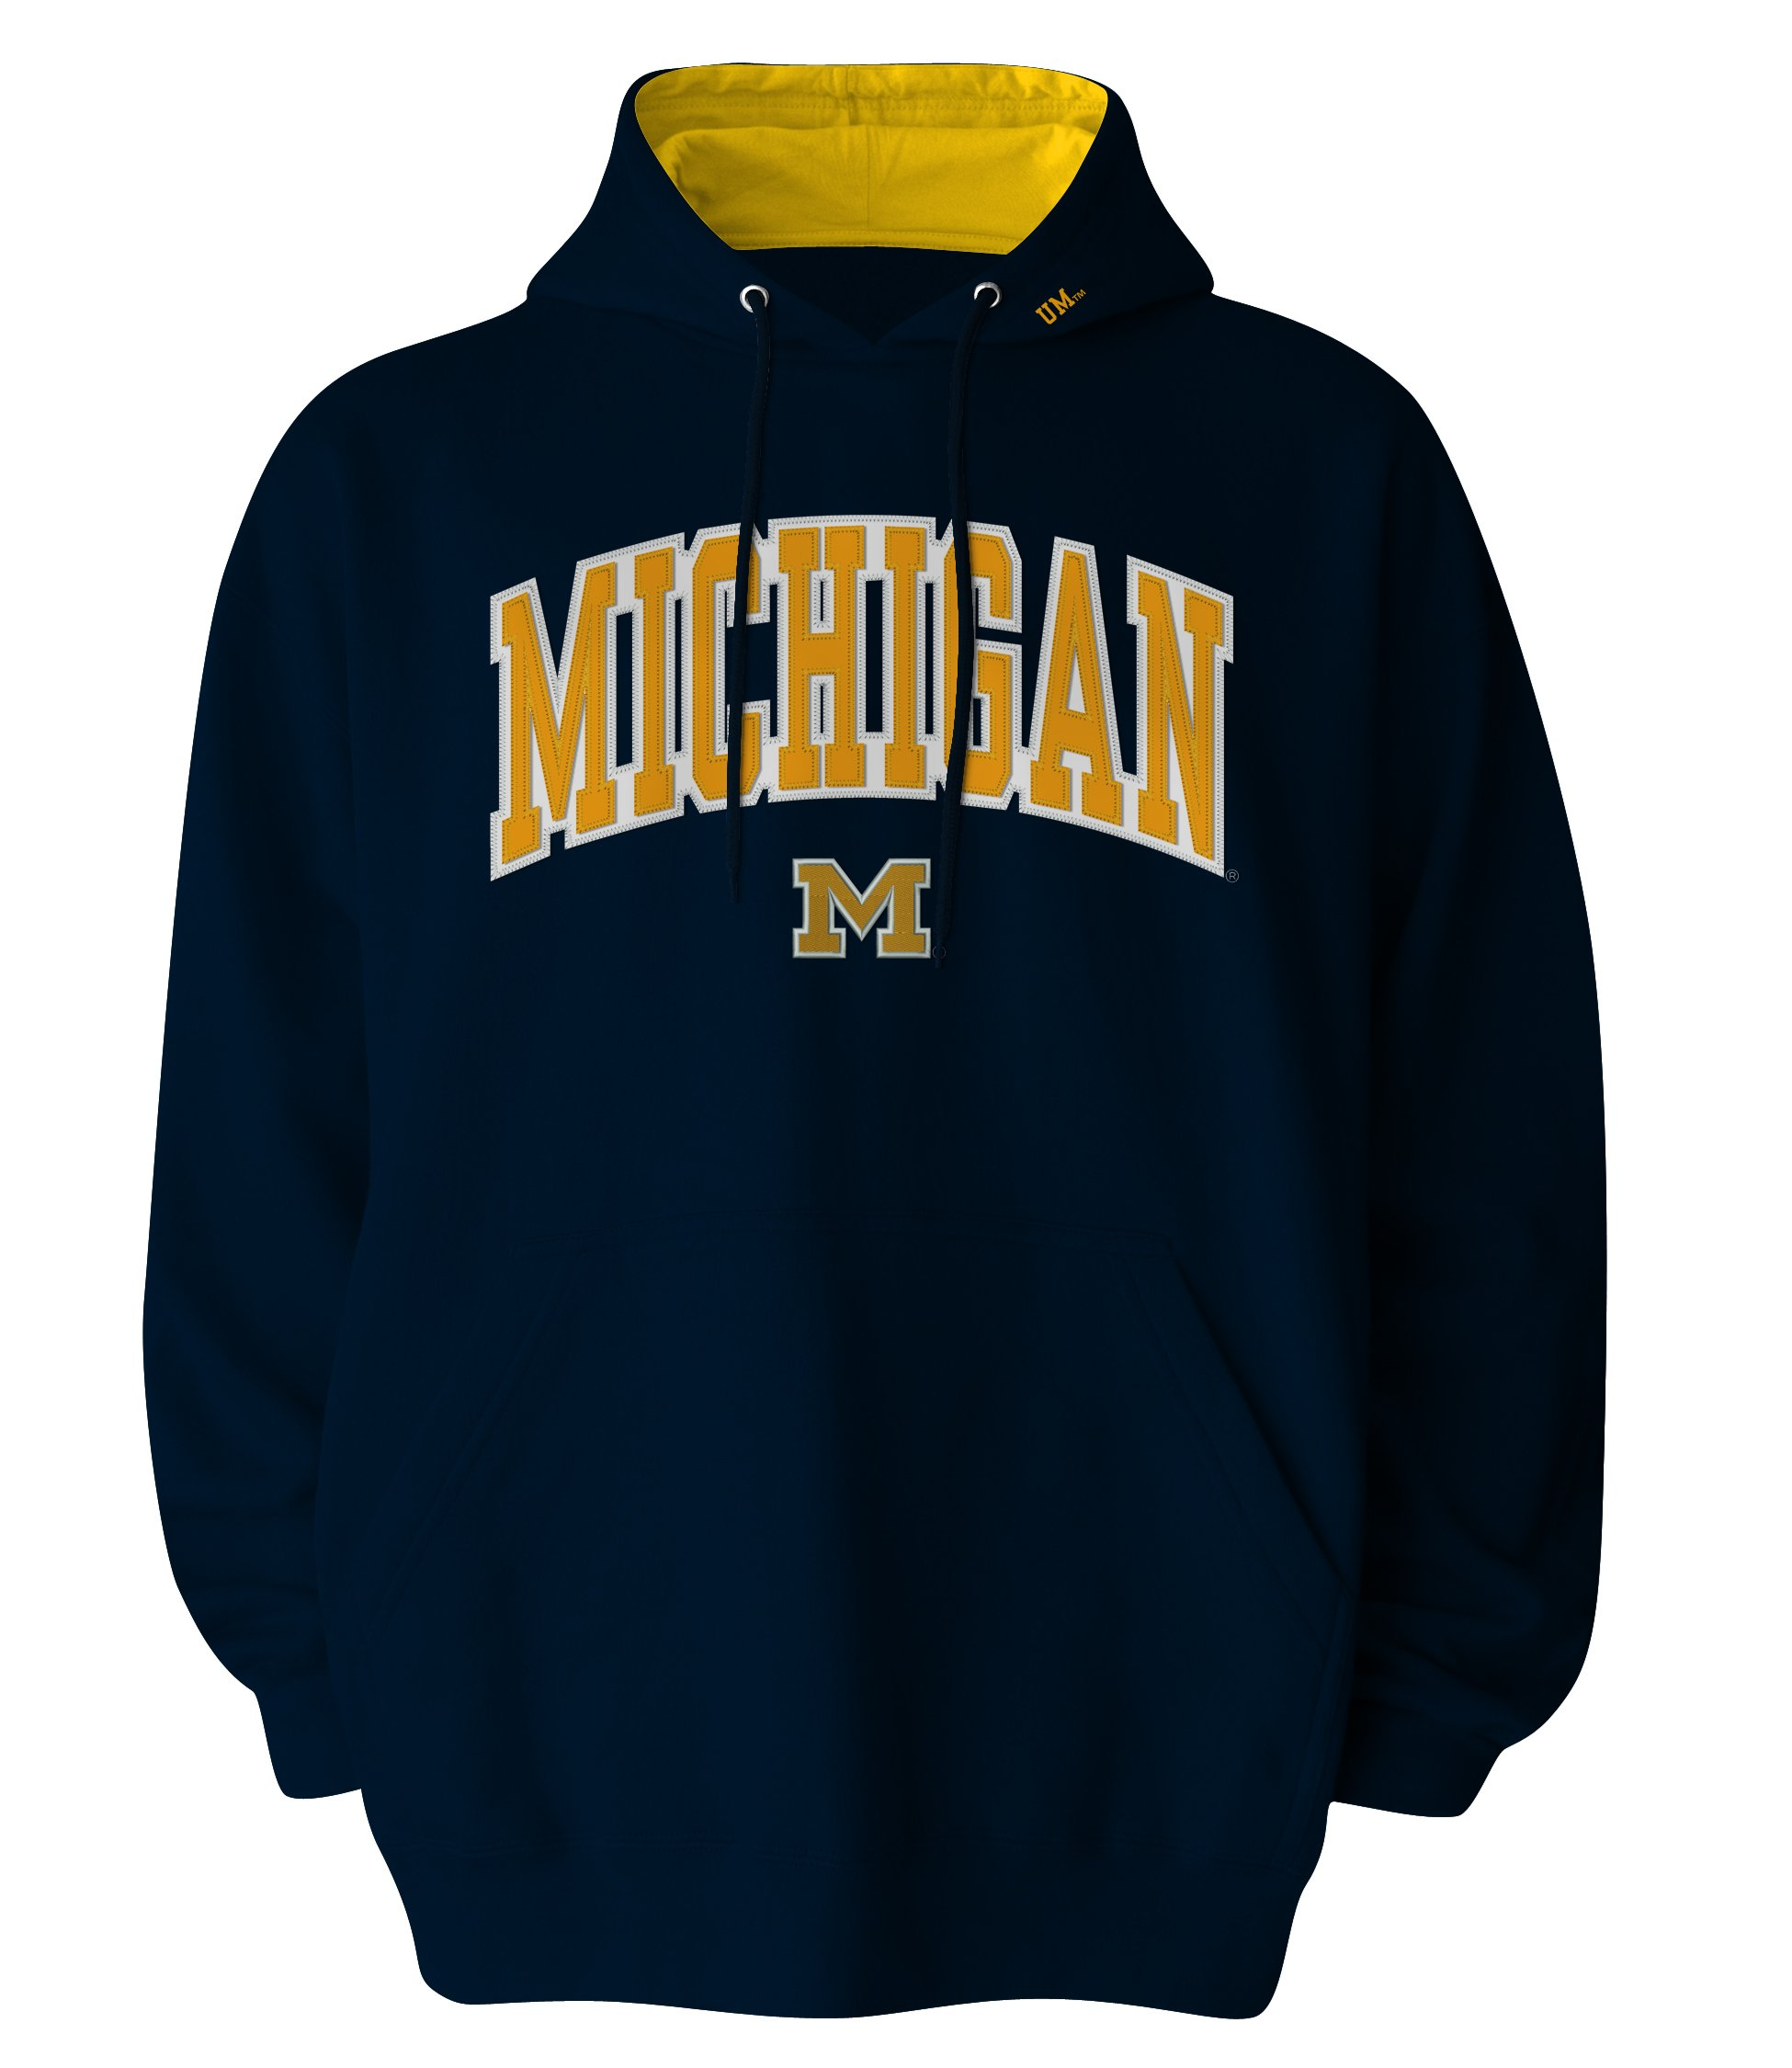 School Shooting Umich: University Of Michigan Apparel: Amazon.com